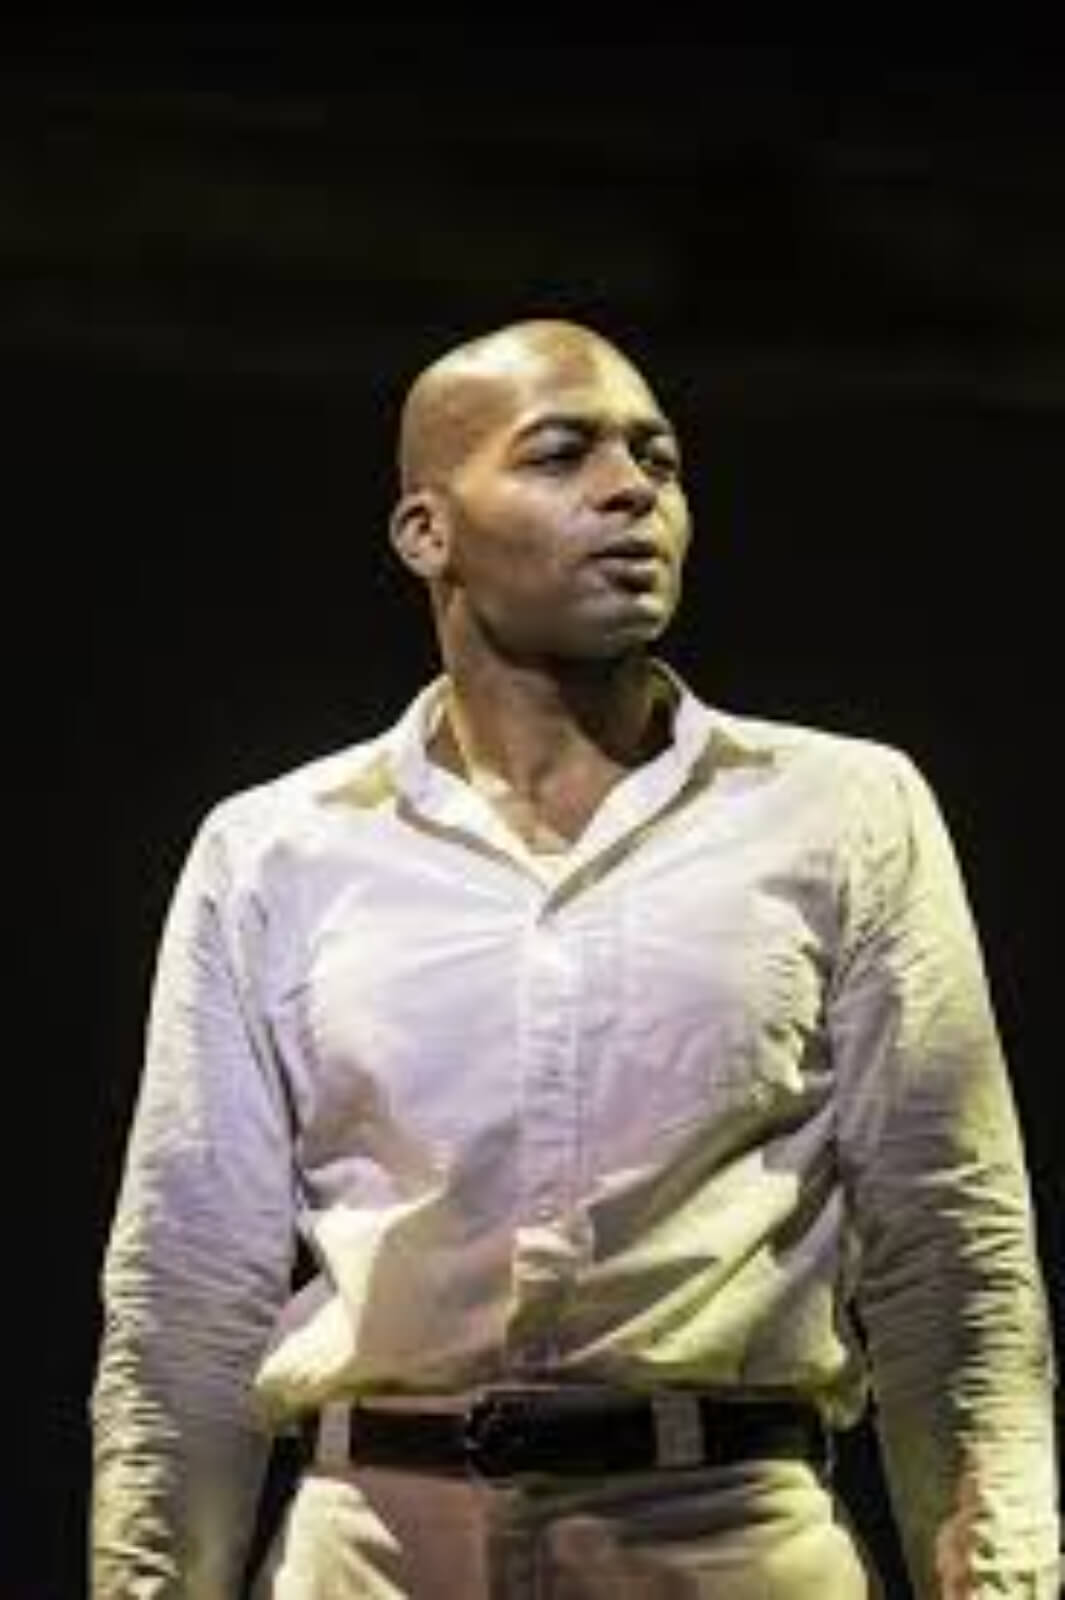 """Haywood Patterson (Brandon Victor Dixon) sings the song """"Go Back Home"""". He is wearing a white shirt and white pants. He is in his jail cell."""